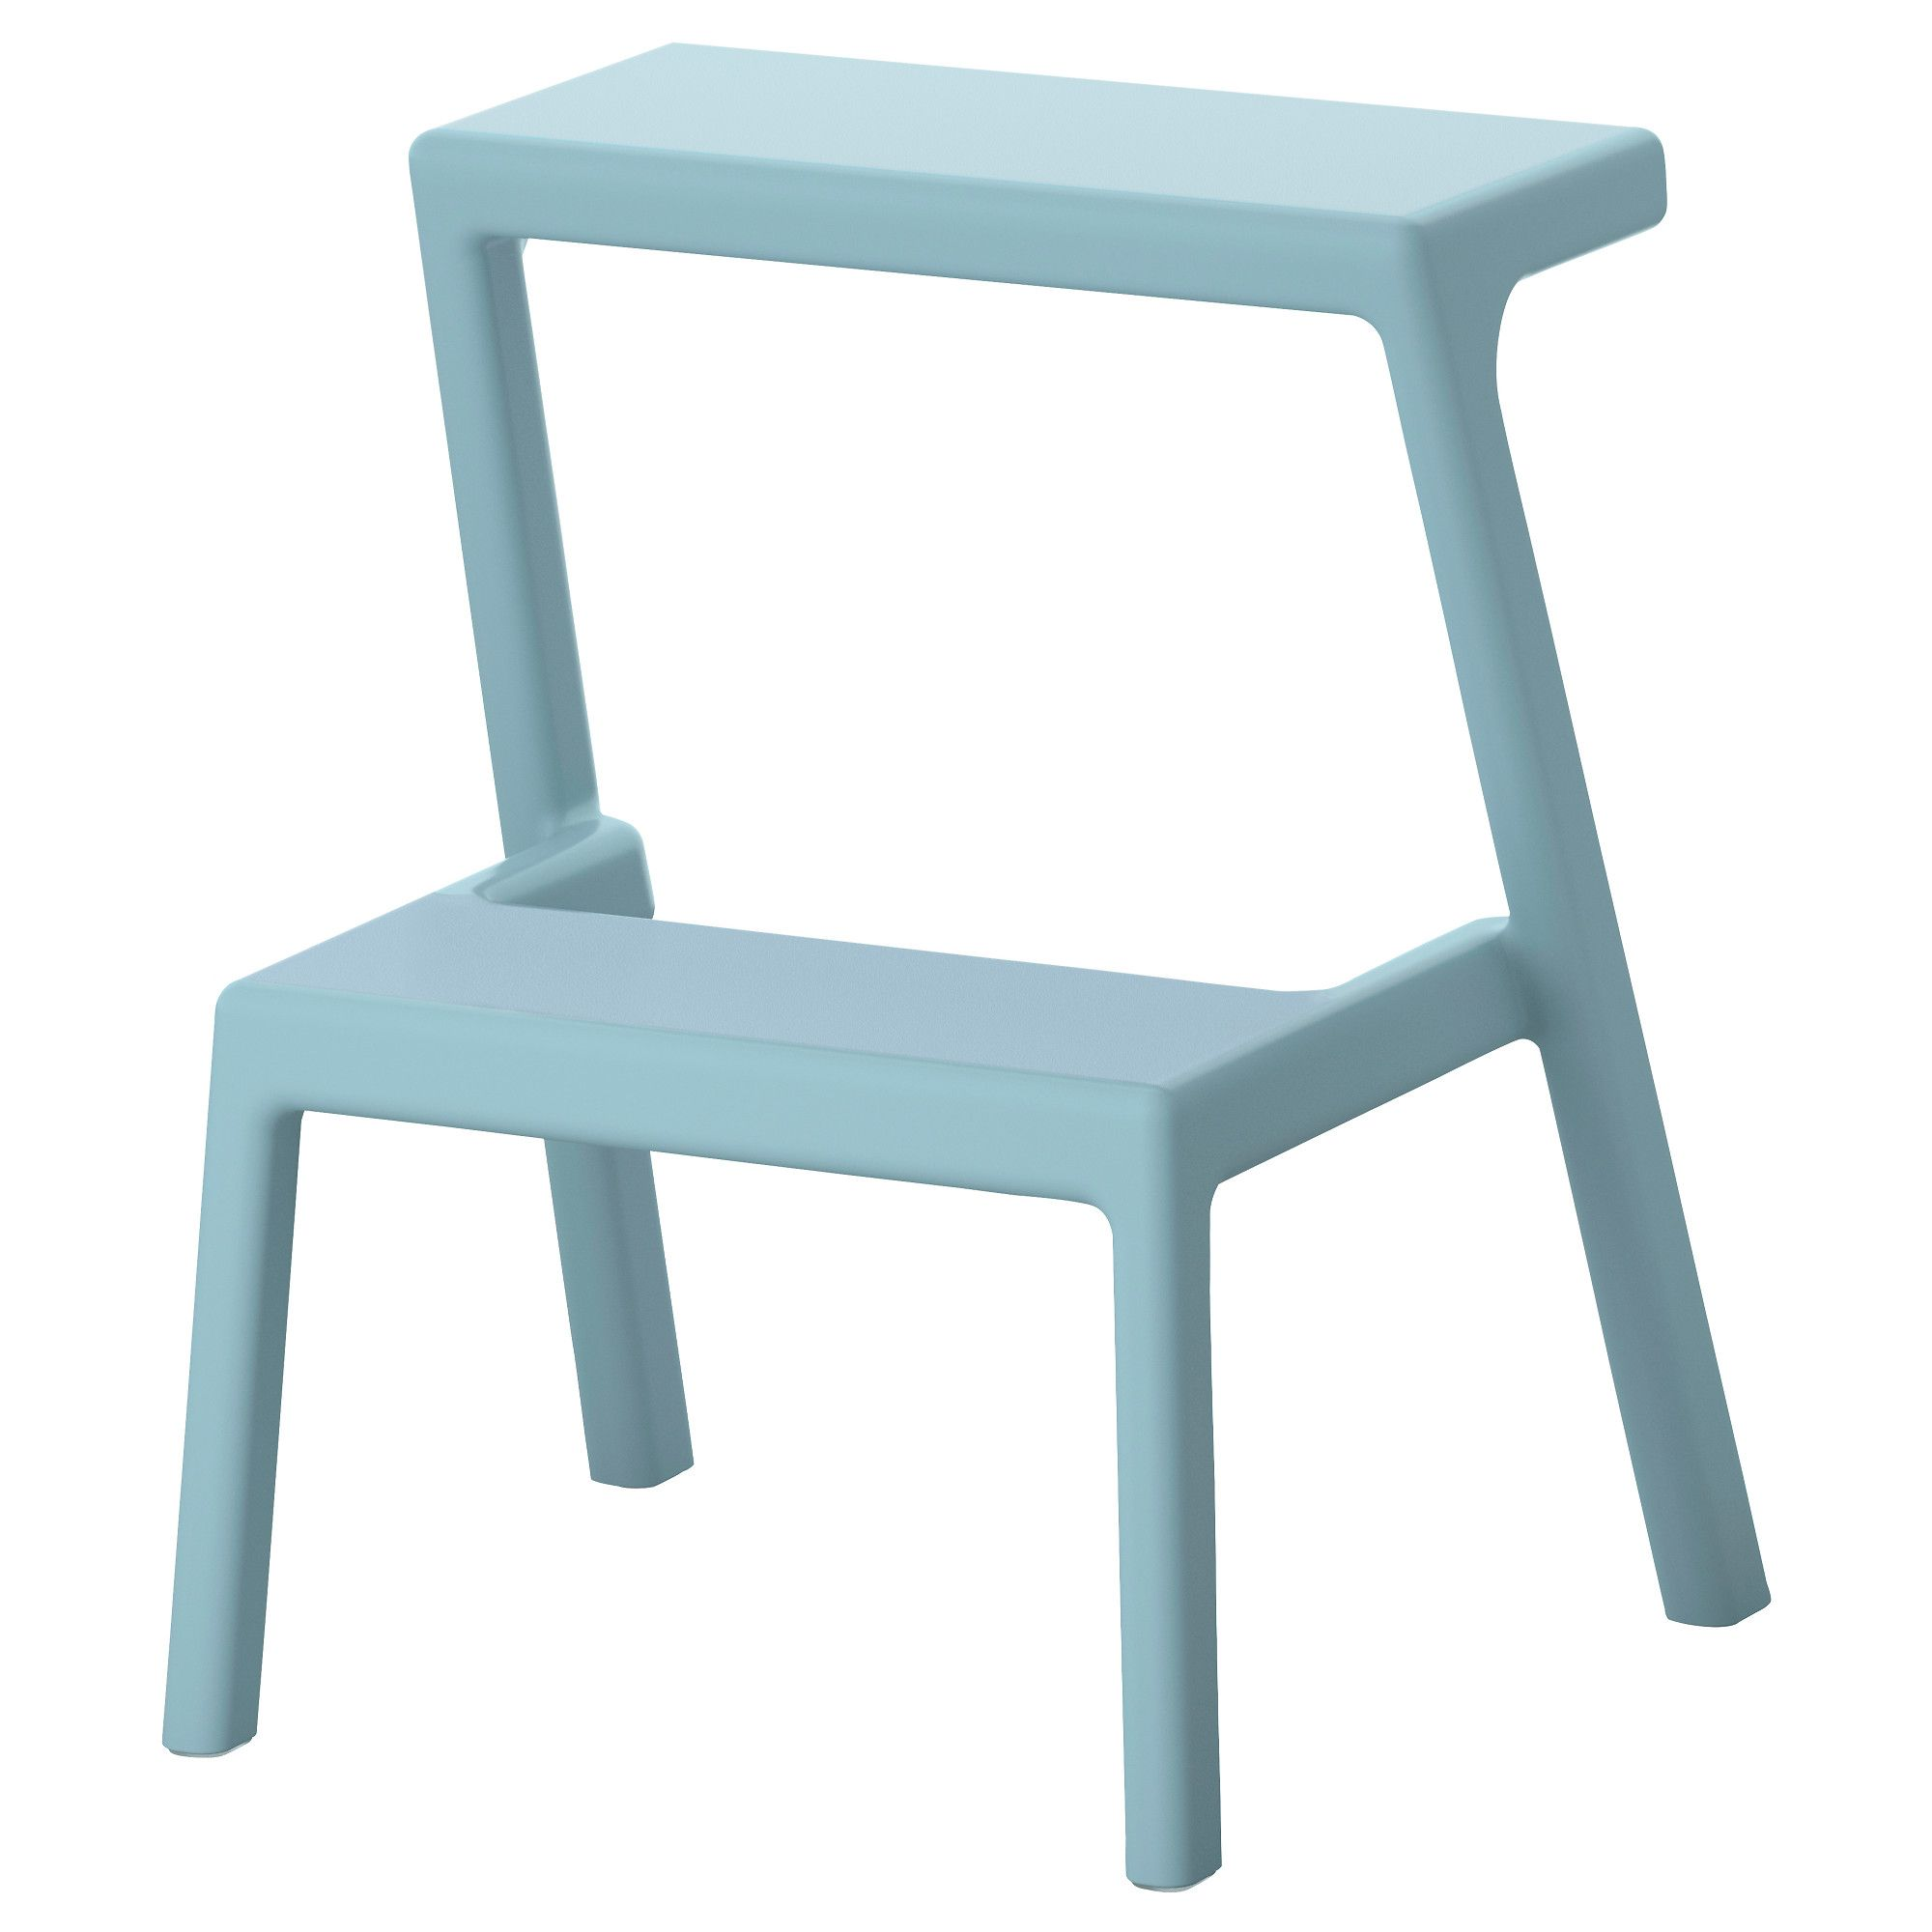 Ikea Kitchen Step Stool Childrens Play Sets Masterby Ideas